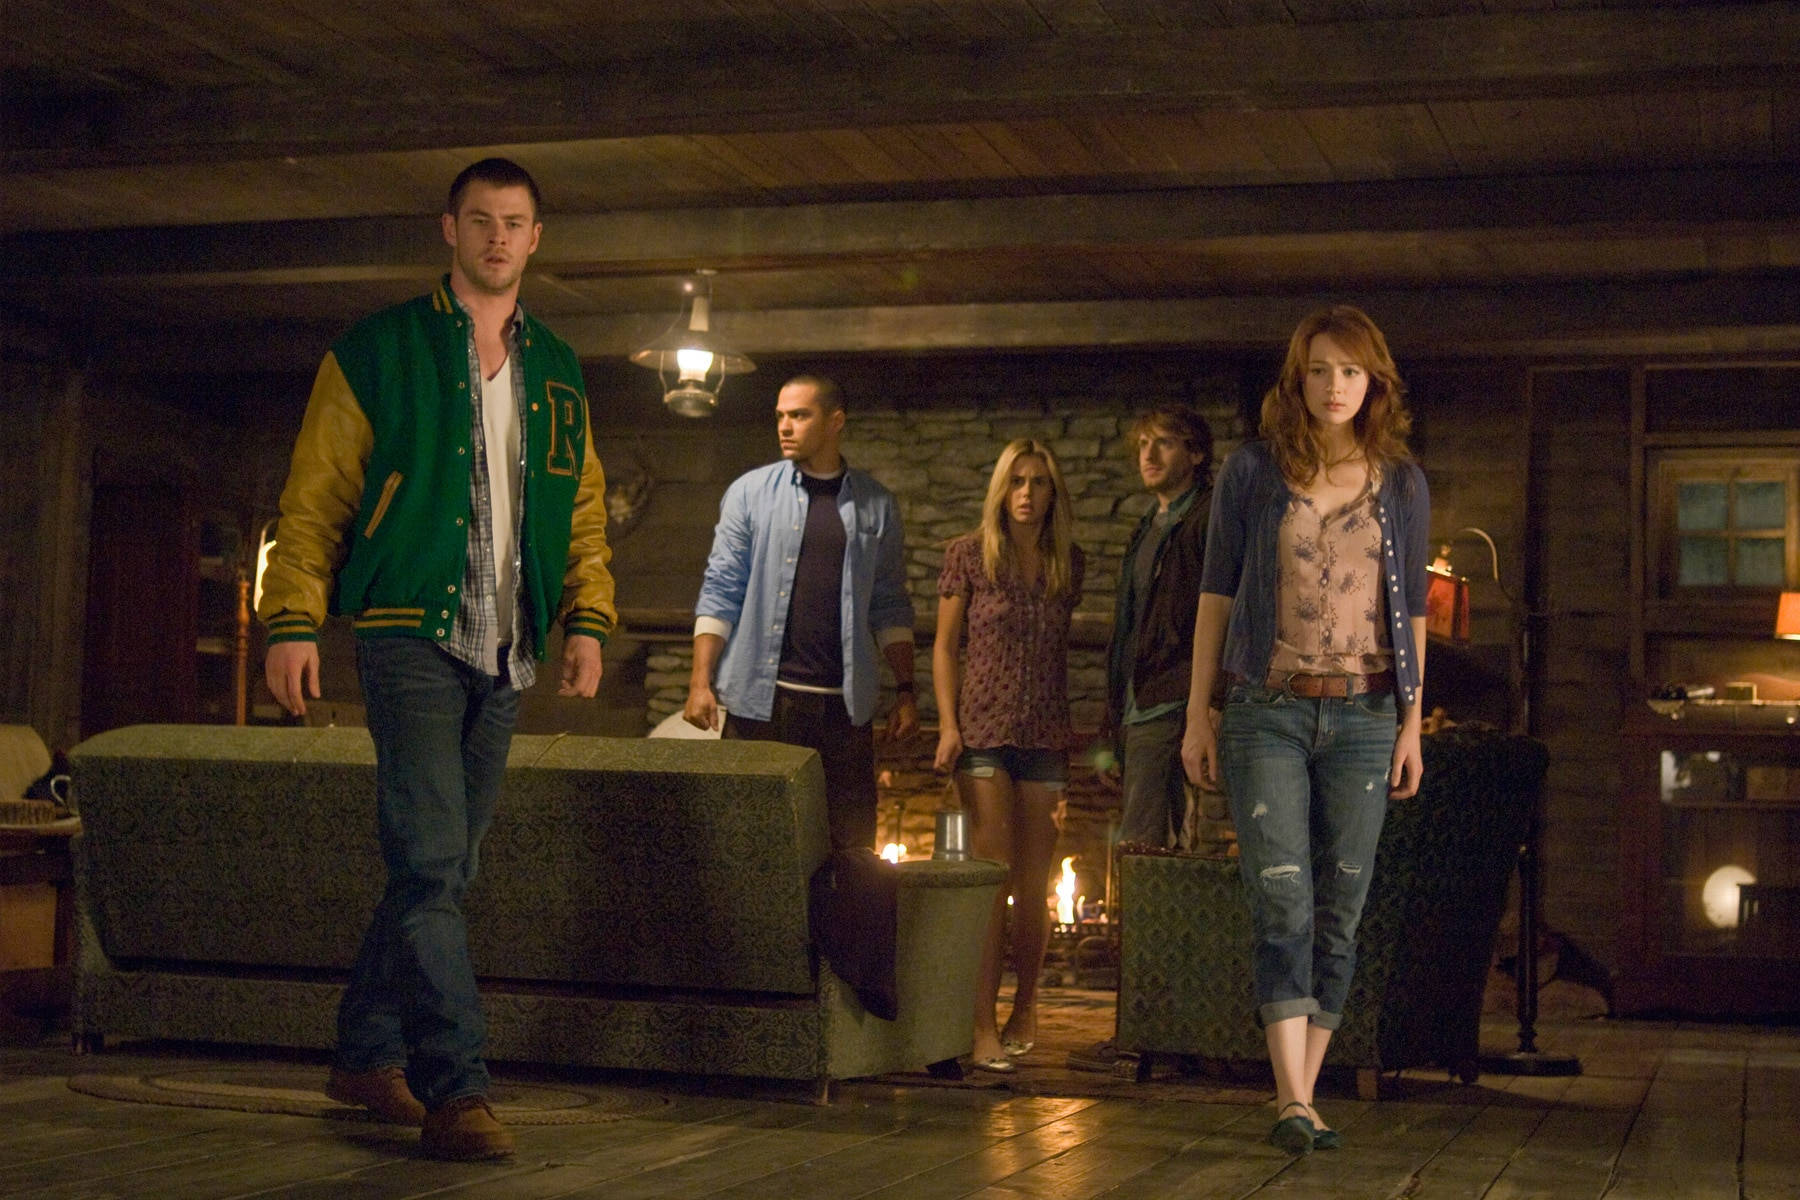 SXSW 2012: Lionsgate's The Cabin in the Woods to Premiere; First Still Released (click for larger image)